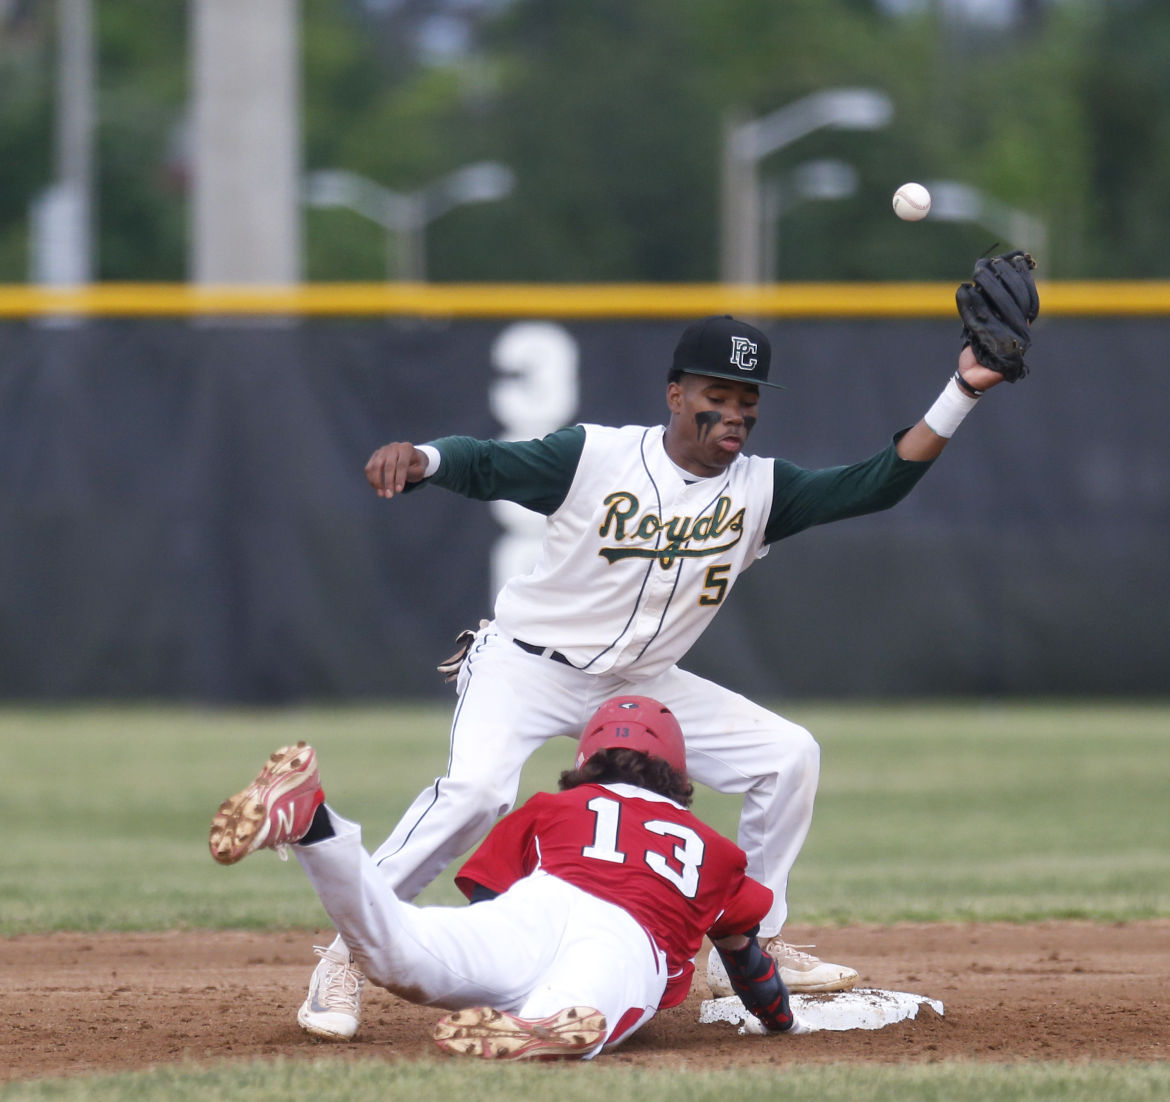 All-conference, region and state teams for baseball